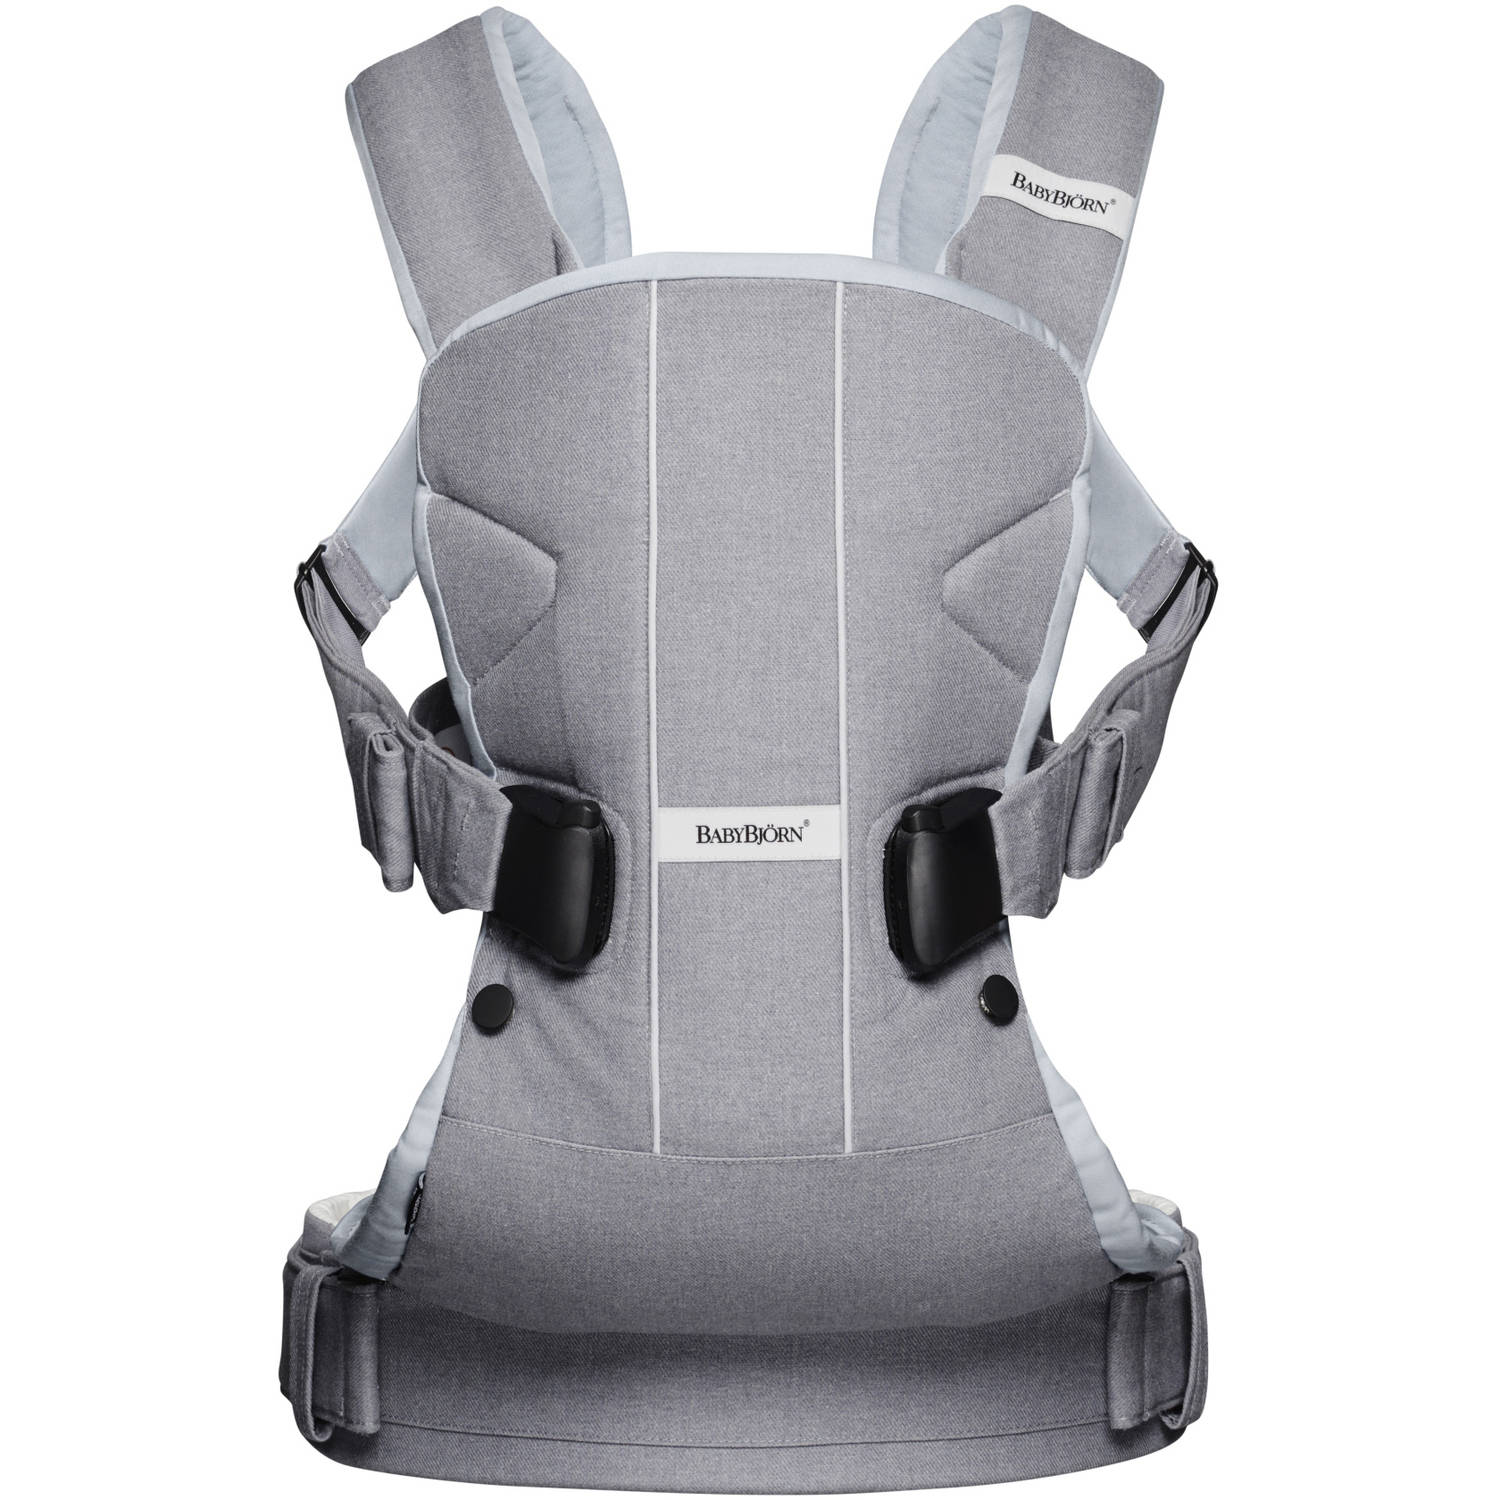 BabyBjorn Baby Carrier One, Little Gray Seal, Cotton Mix by BabyBj%C3%B6rn